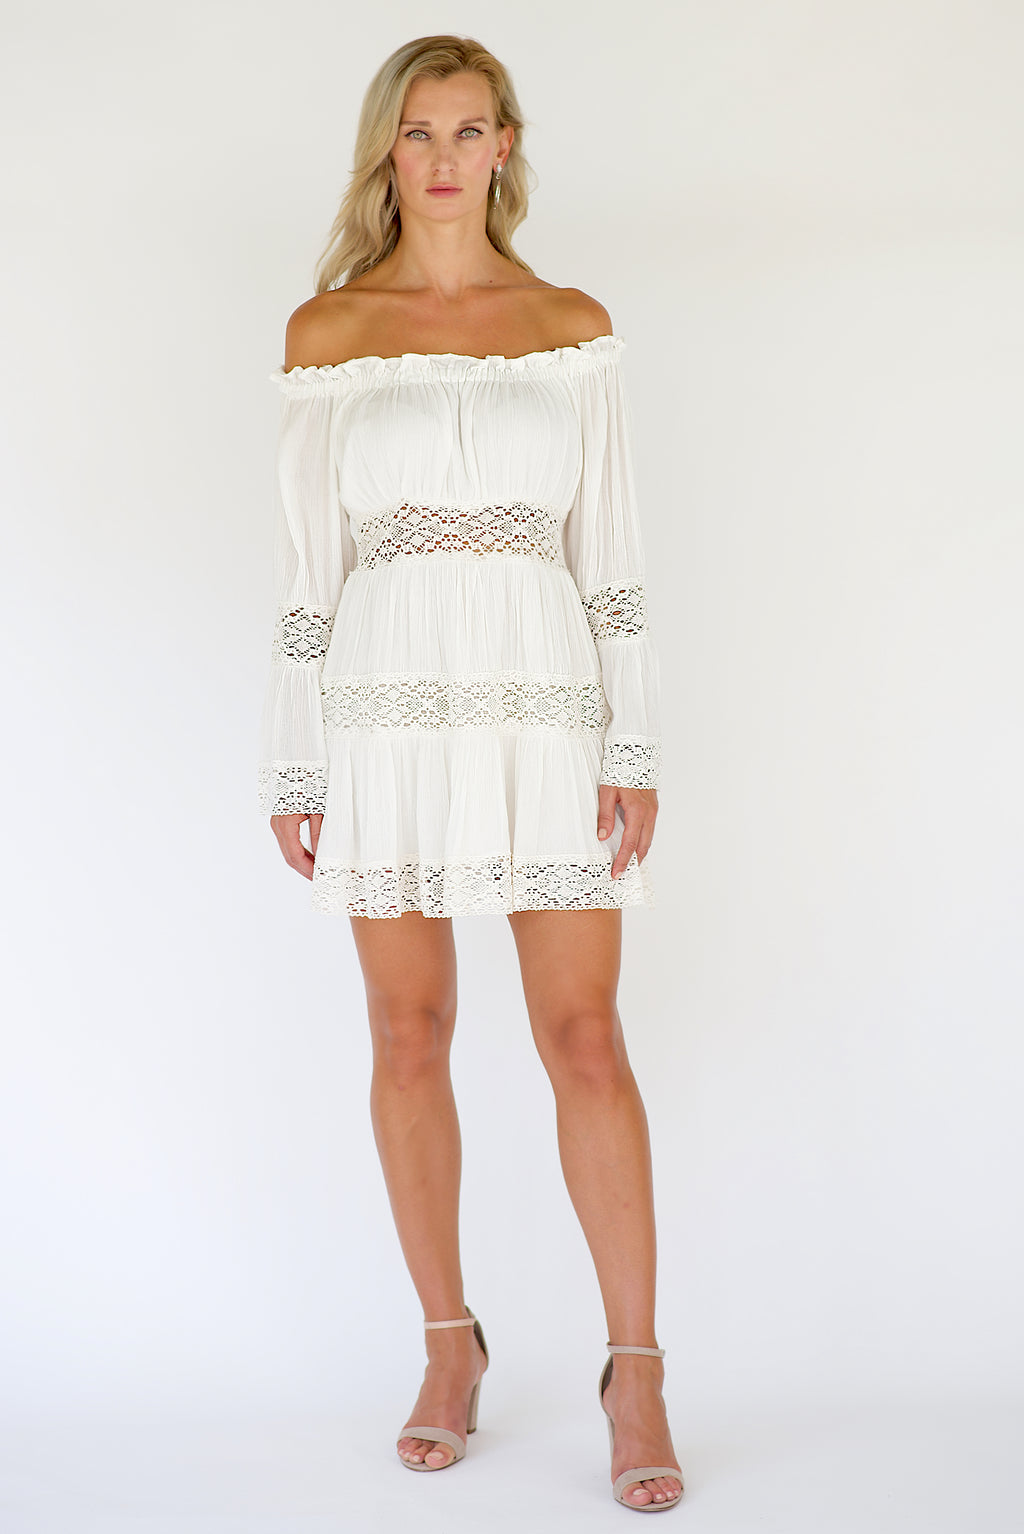 White off the shoulder mini dress